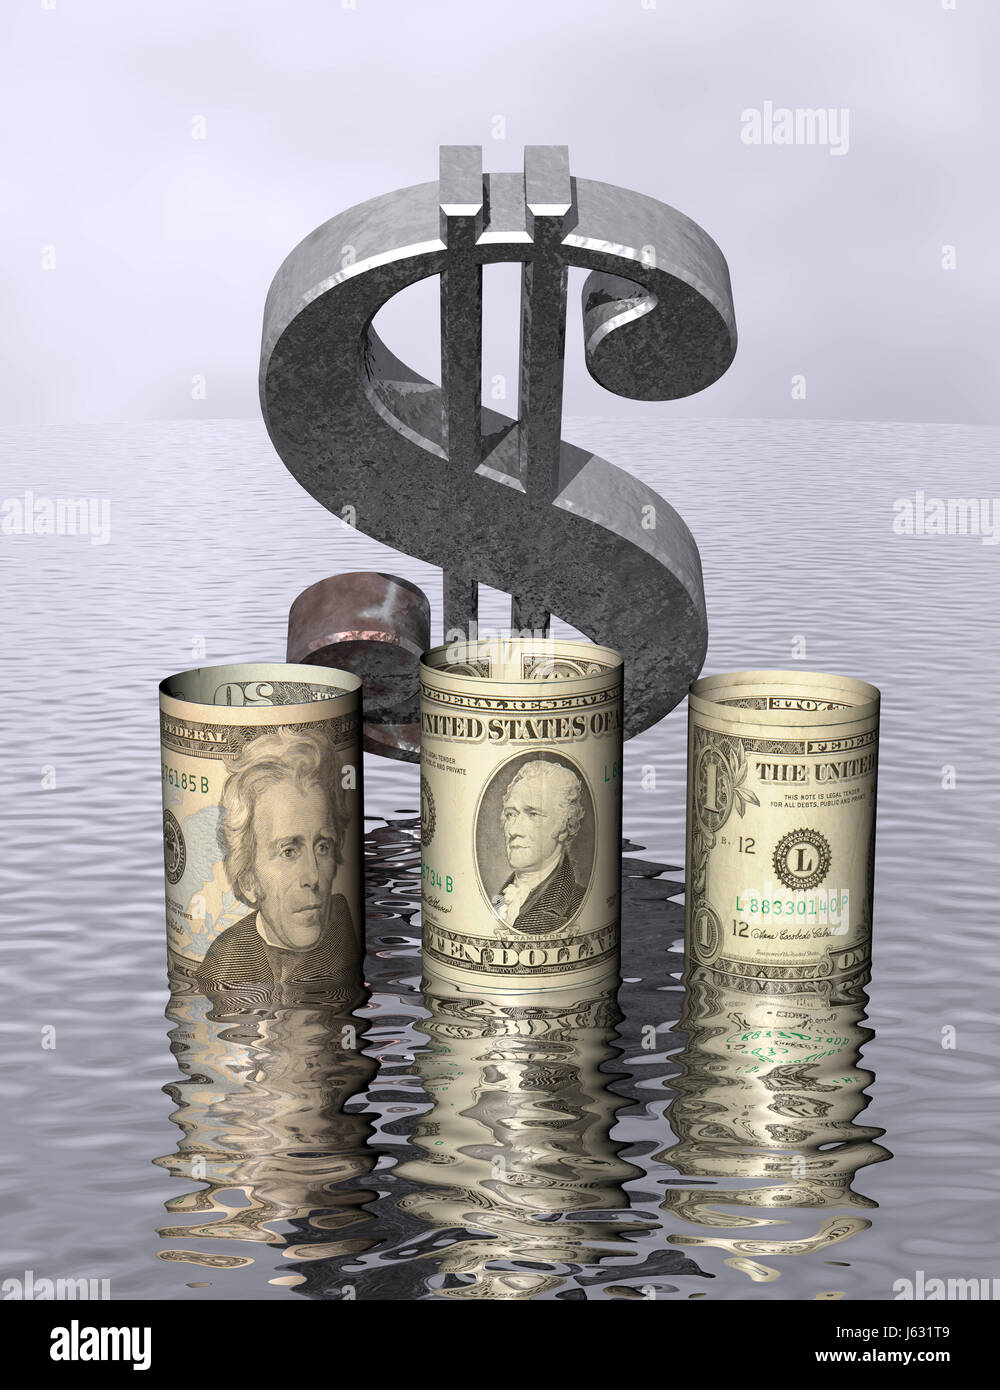 Dollar dollars downfall high tide stock photos dollar dollars dollar dollars downfall high tide break in prices downward spurt plunging stock stock image biocorpaavc